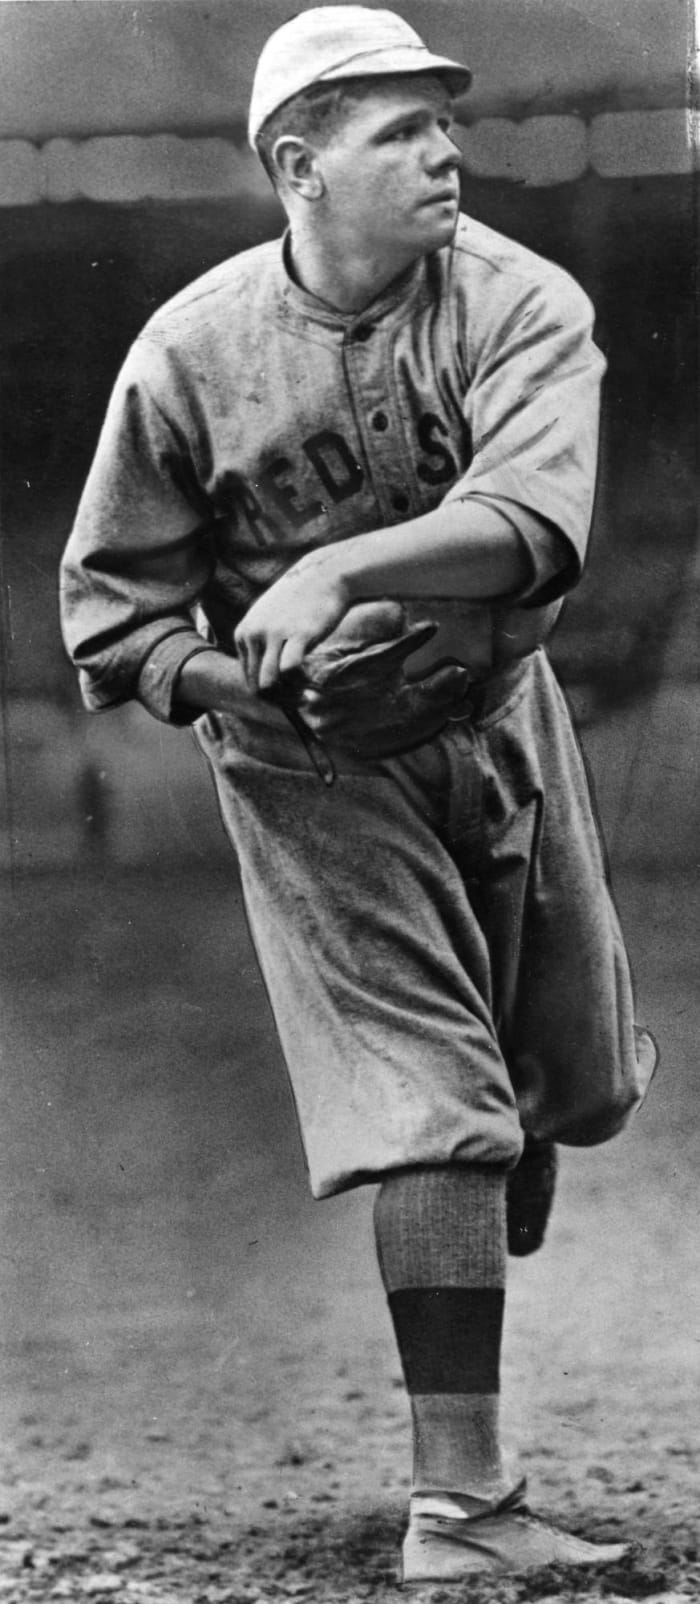 Ruth pitches his first game for Boston